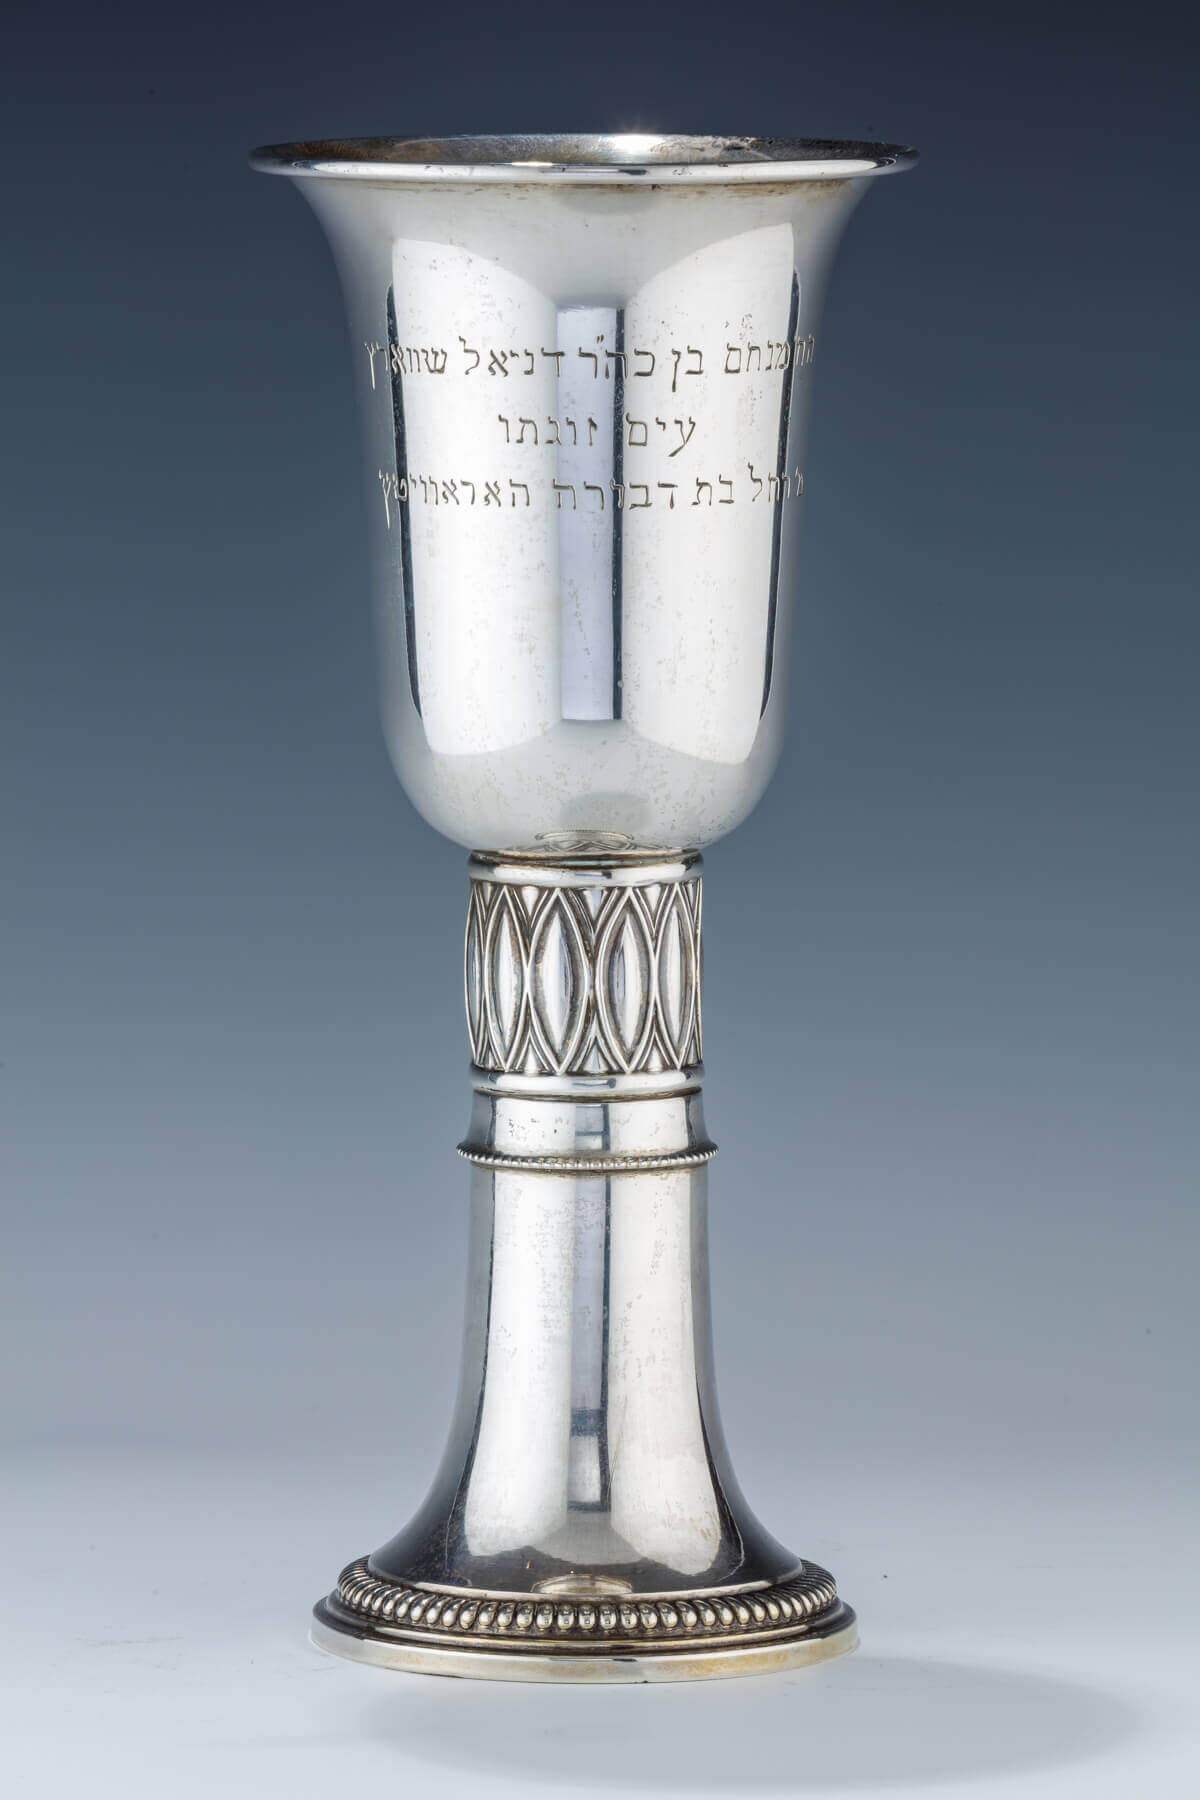 042. A LARGE SILVER KIDDUSH CUP